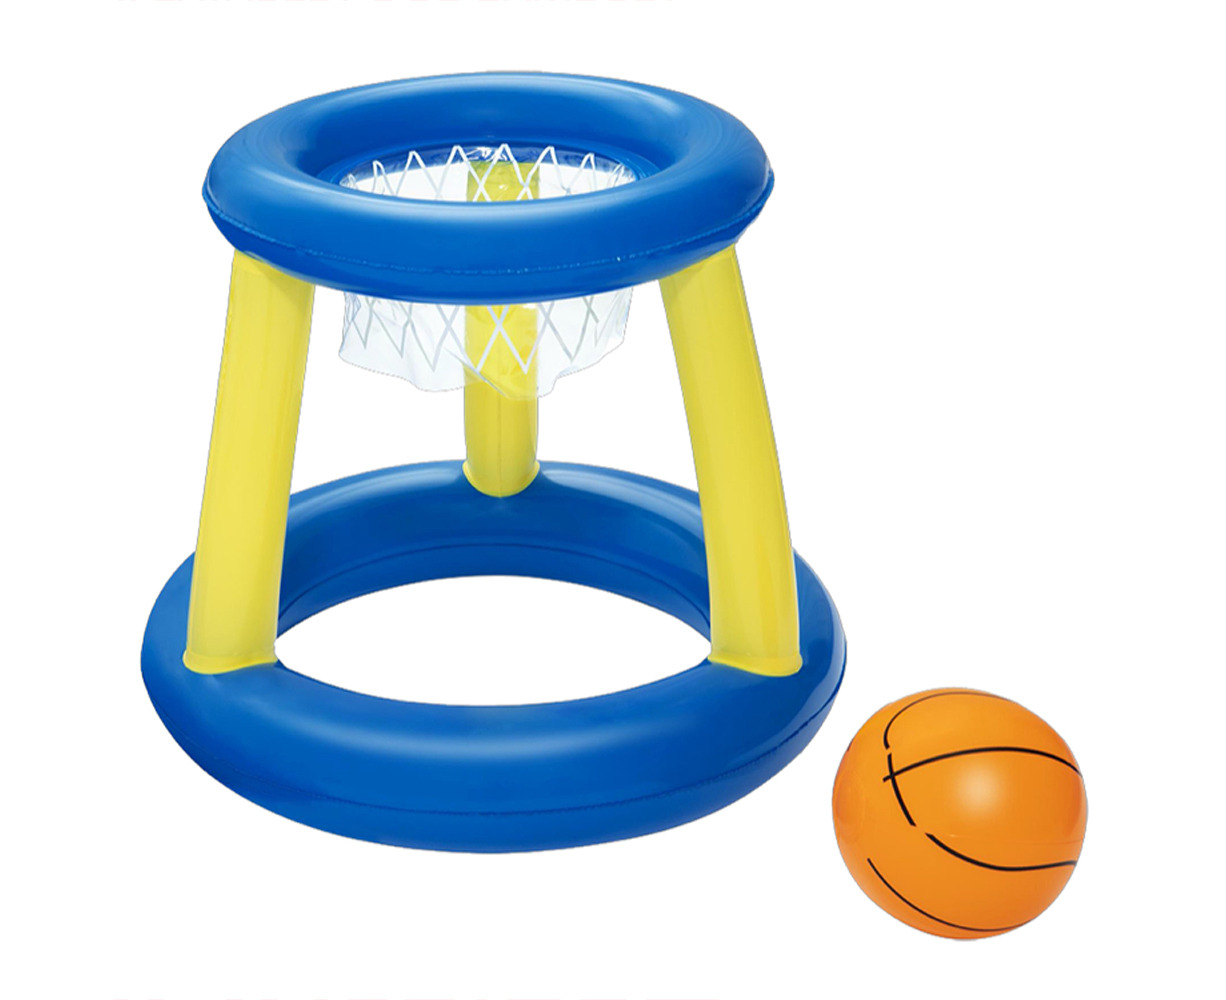 Stocking Fillers for Little Boys | Basketball Pool Game | Beanstalk Mums